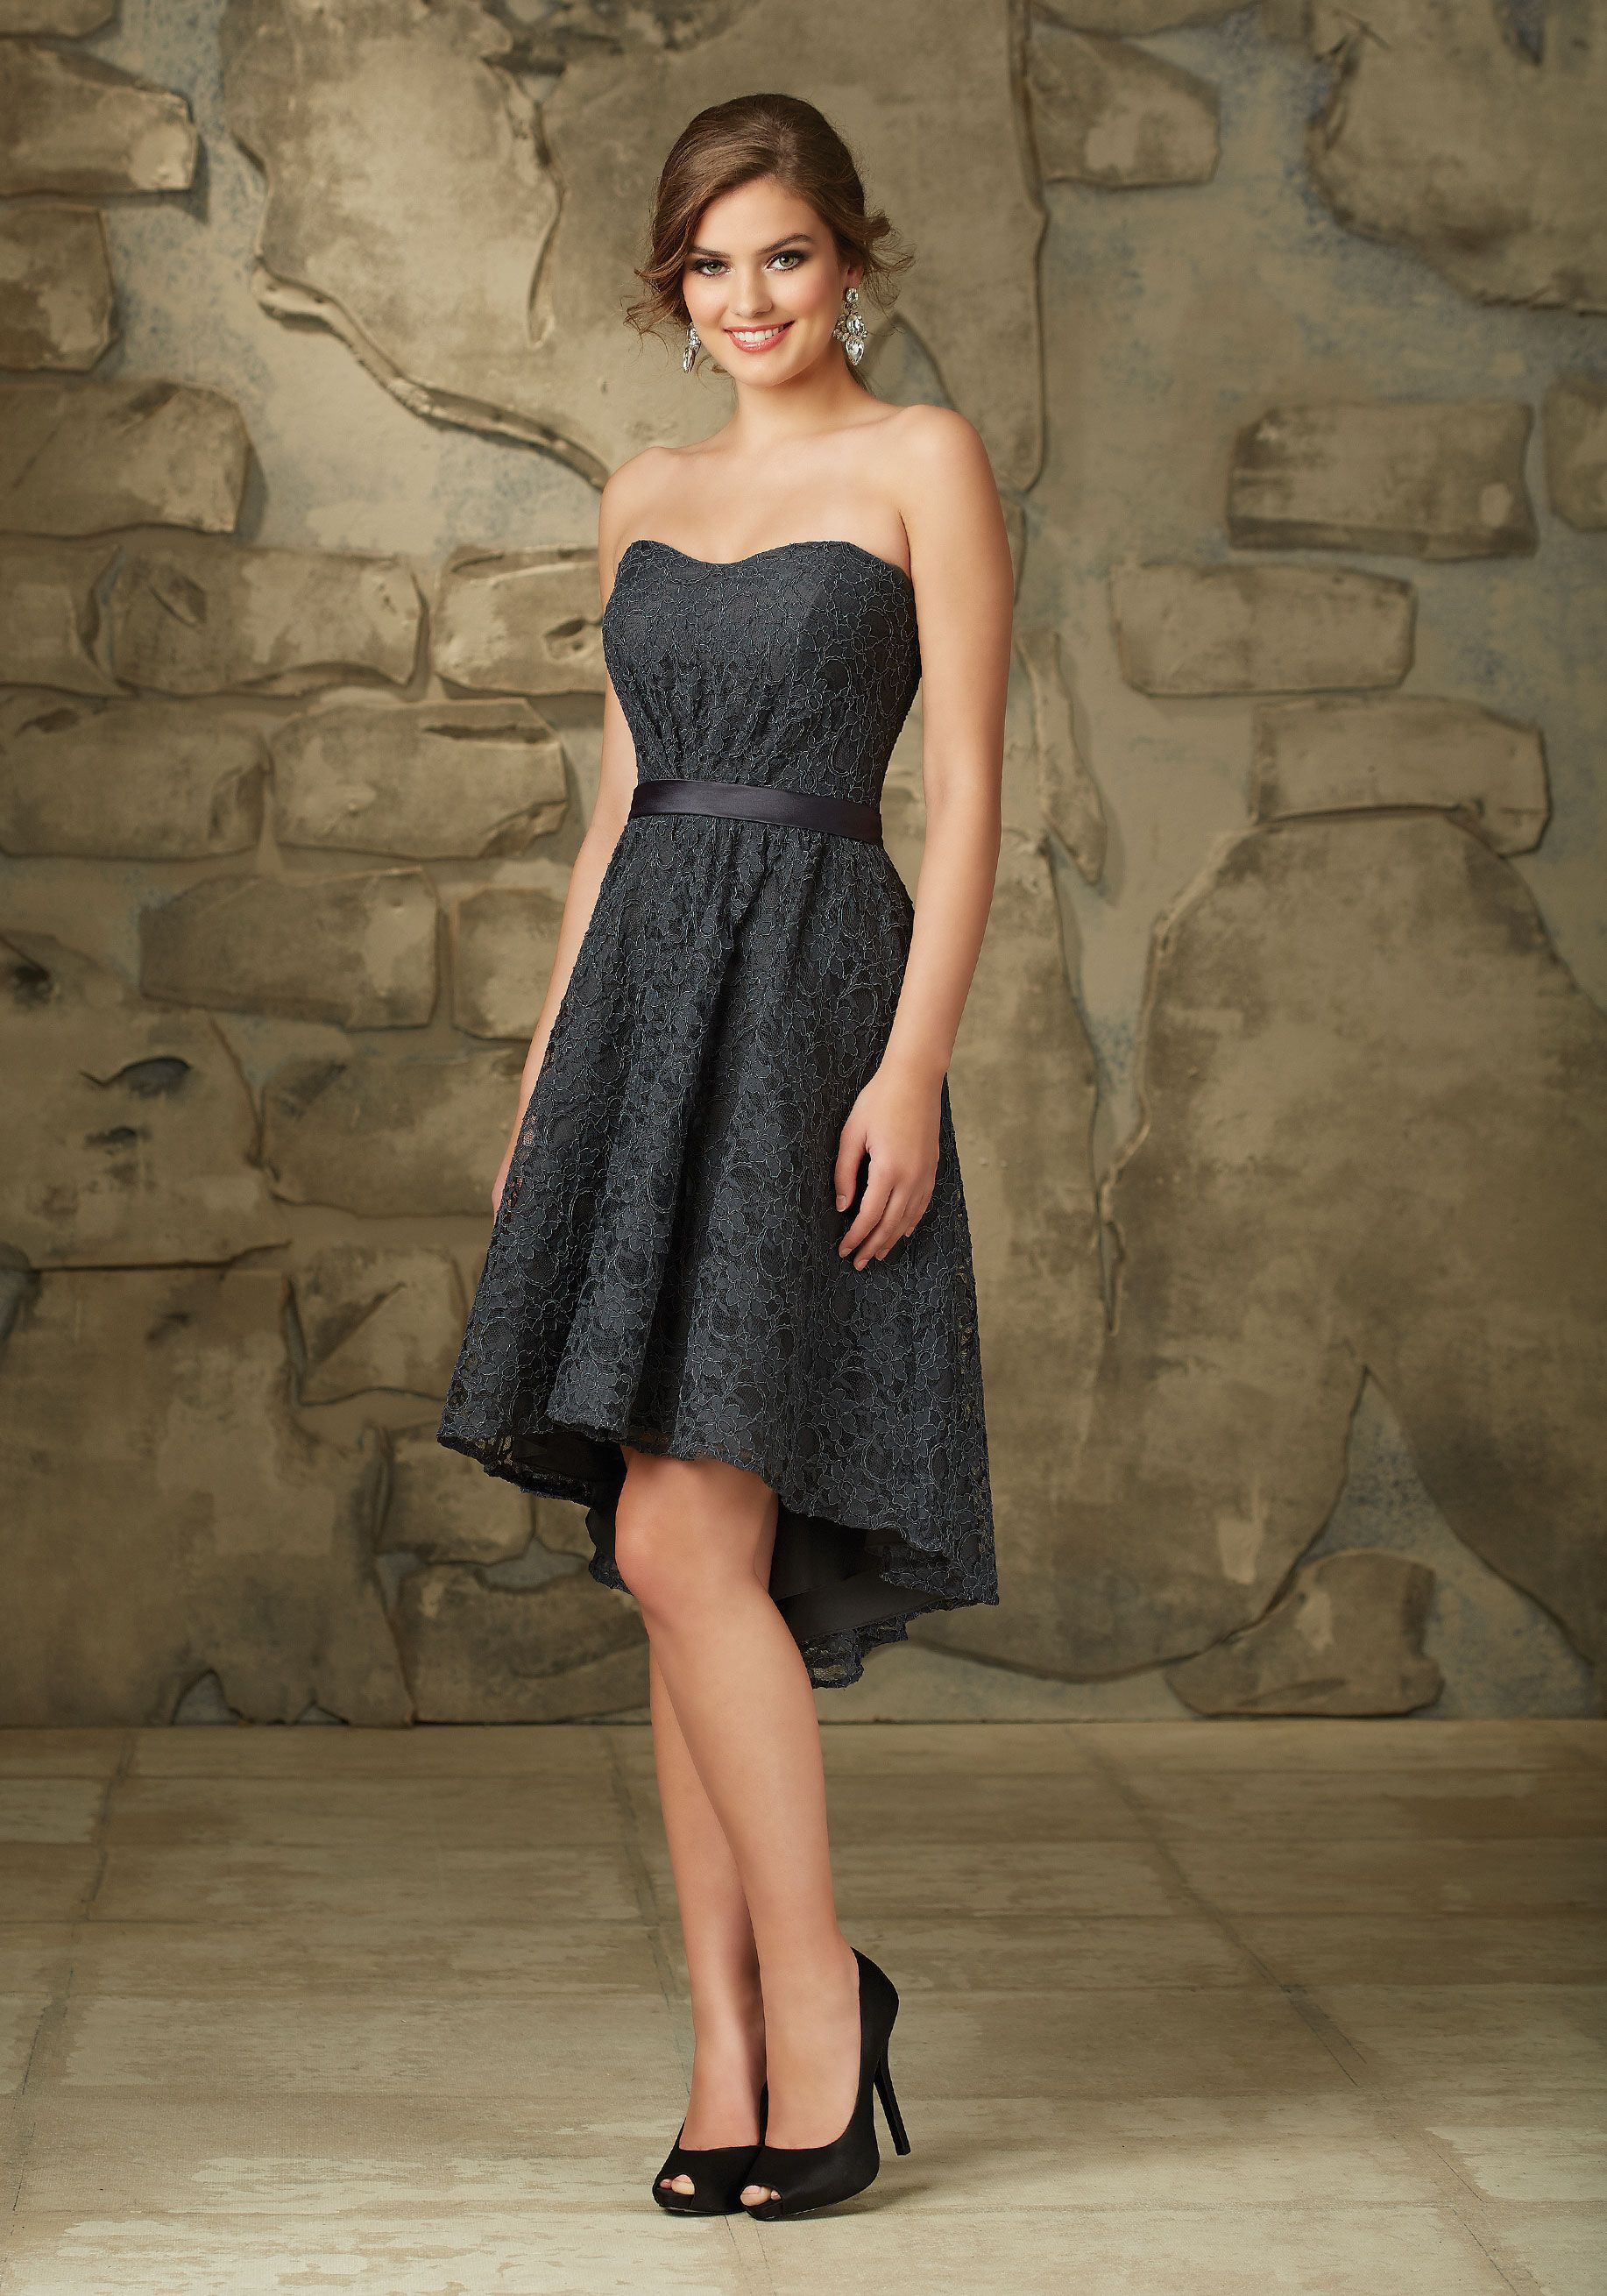 Lace bridesmaid dress with shorter front and longer back designed affairs by mori lee bridesmaid dress style 31063 ombrellifo Gallery